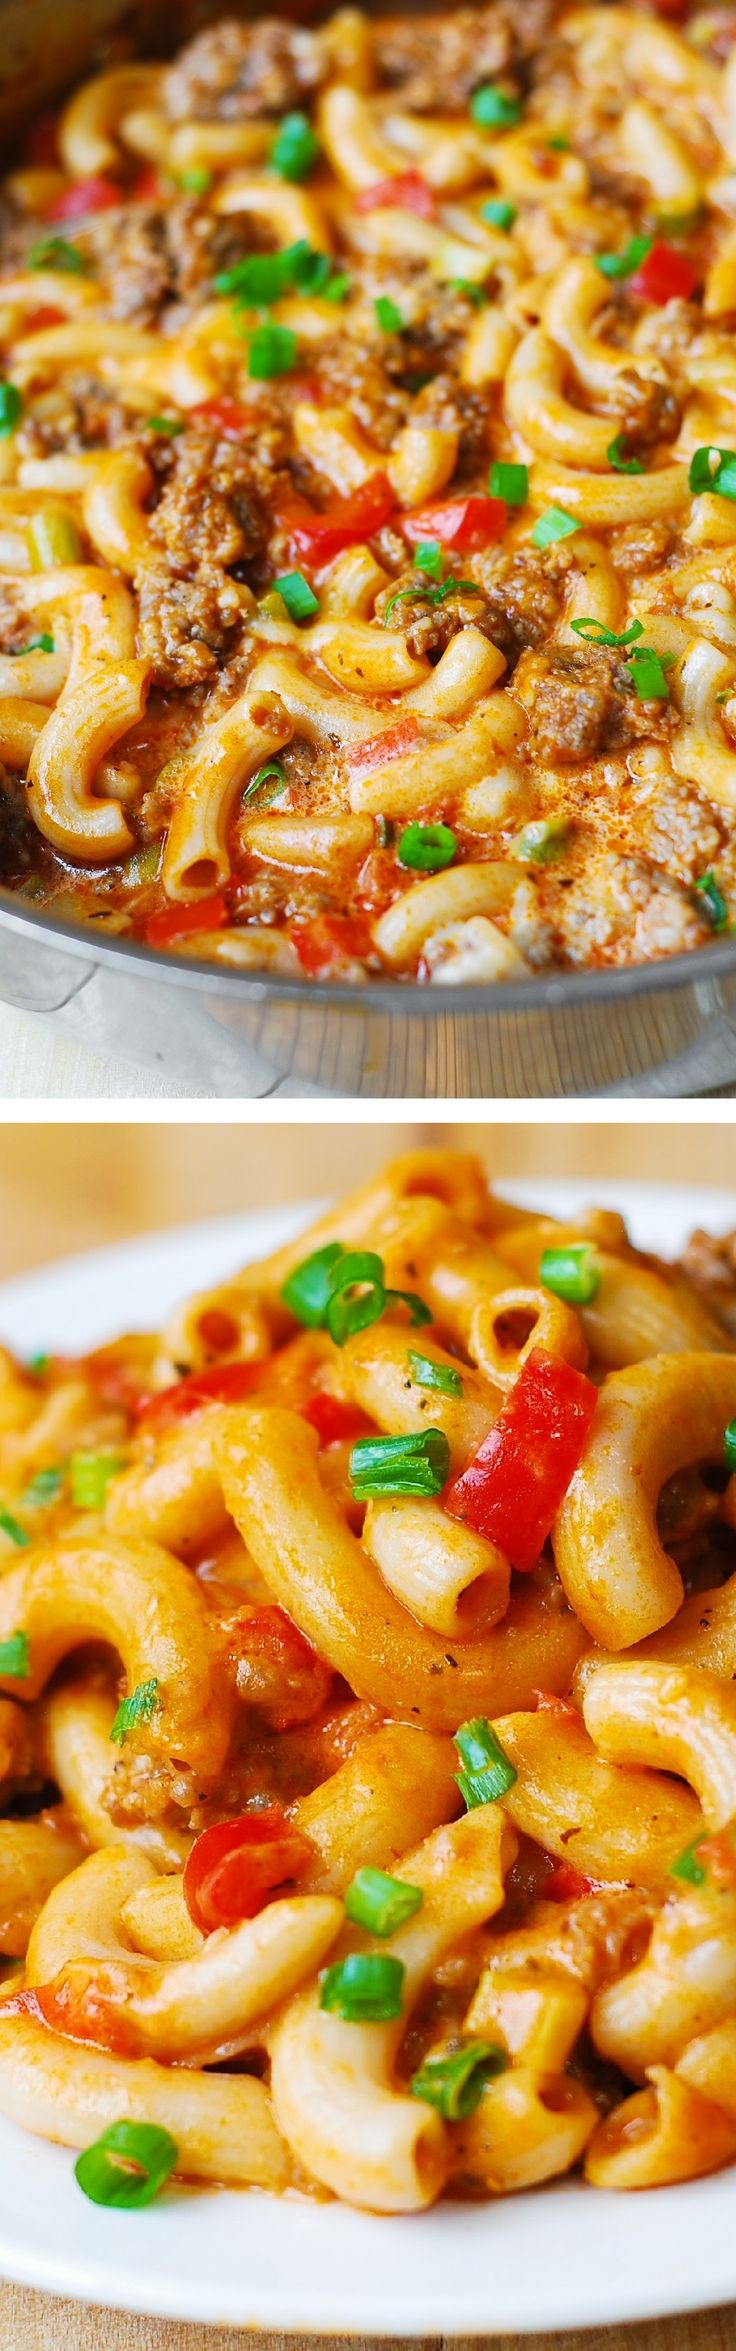 One-Skillet Mac and Cheese with Sausage and Bell Peppers, smothered in marinara sauce and cream. Everything is cooked in one skillet: sausage, bell peppers, and even pasta! For gluten free version, use gluten free brown rice pasta.